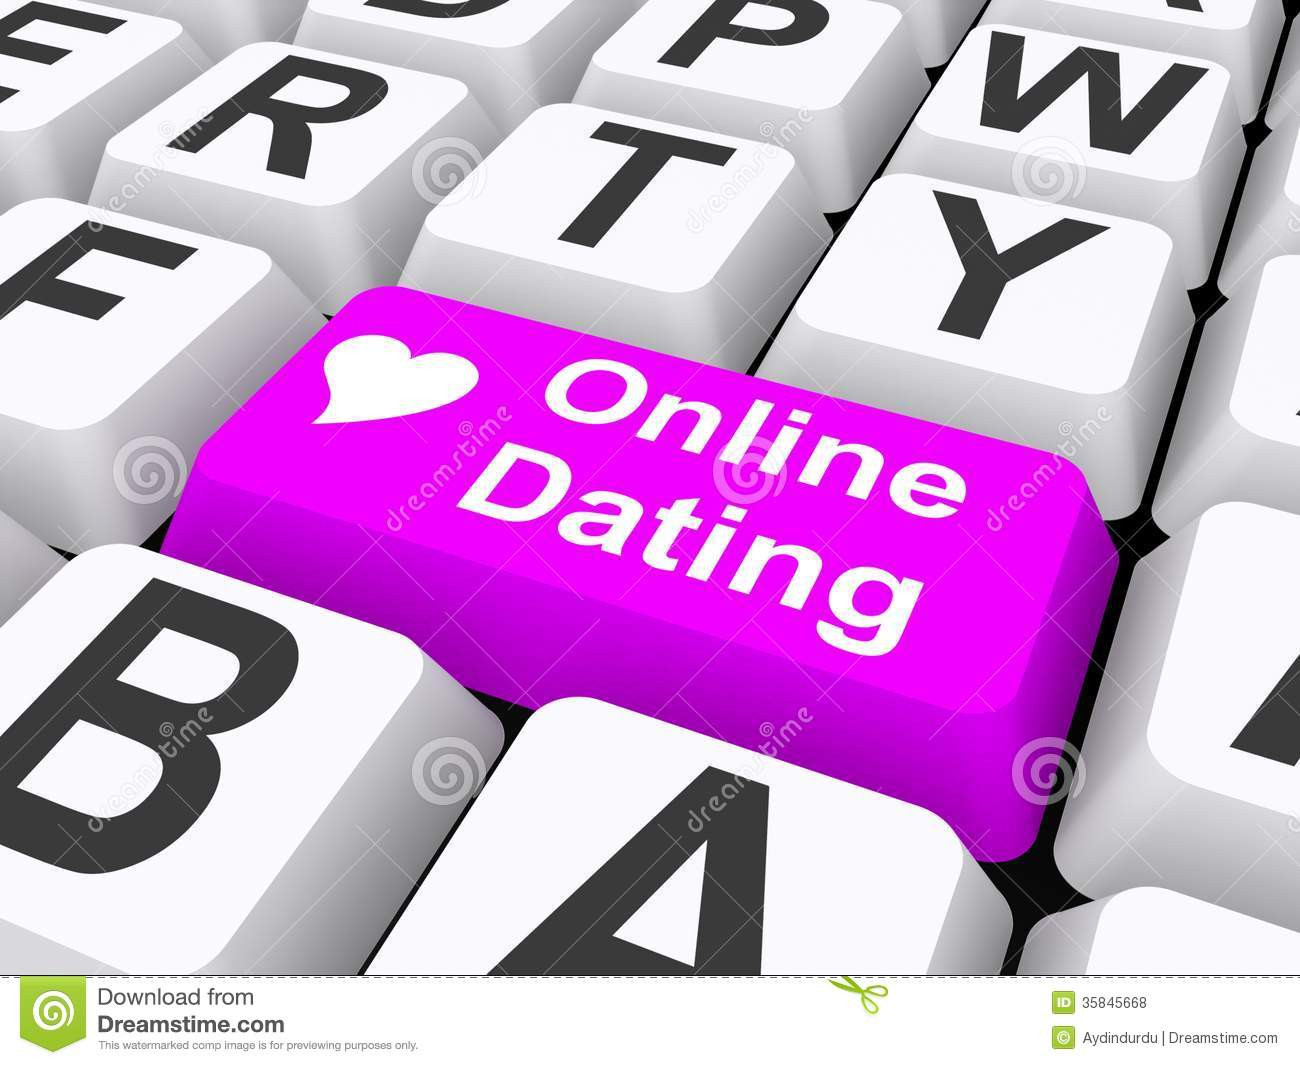 honomu online hookup & dating Free honomu personals dating site for people living in honomu, hawaii.